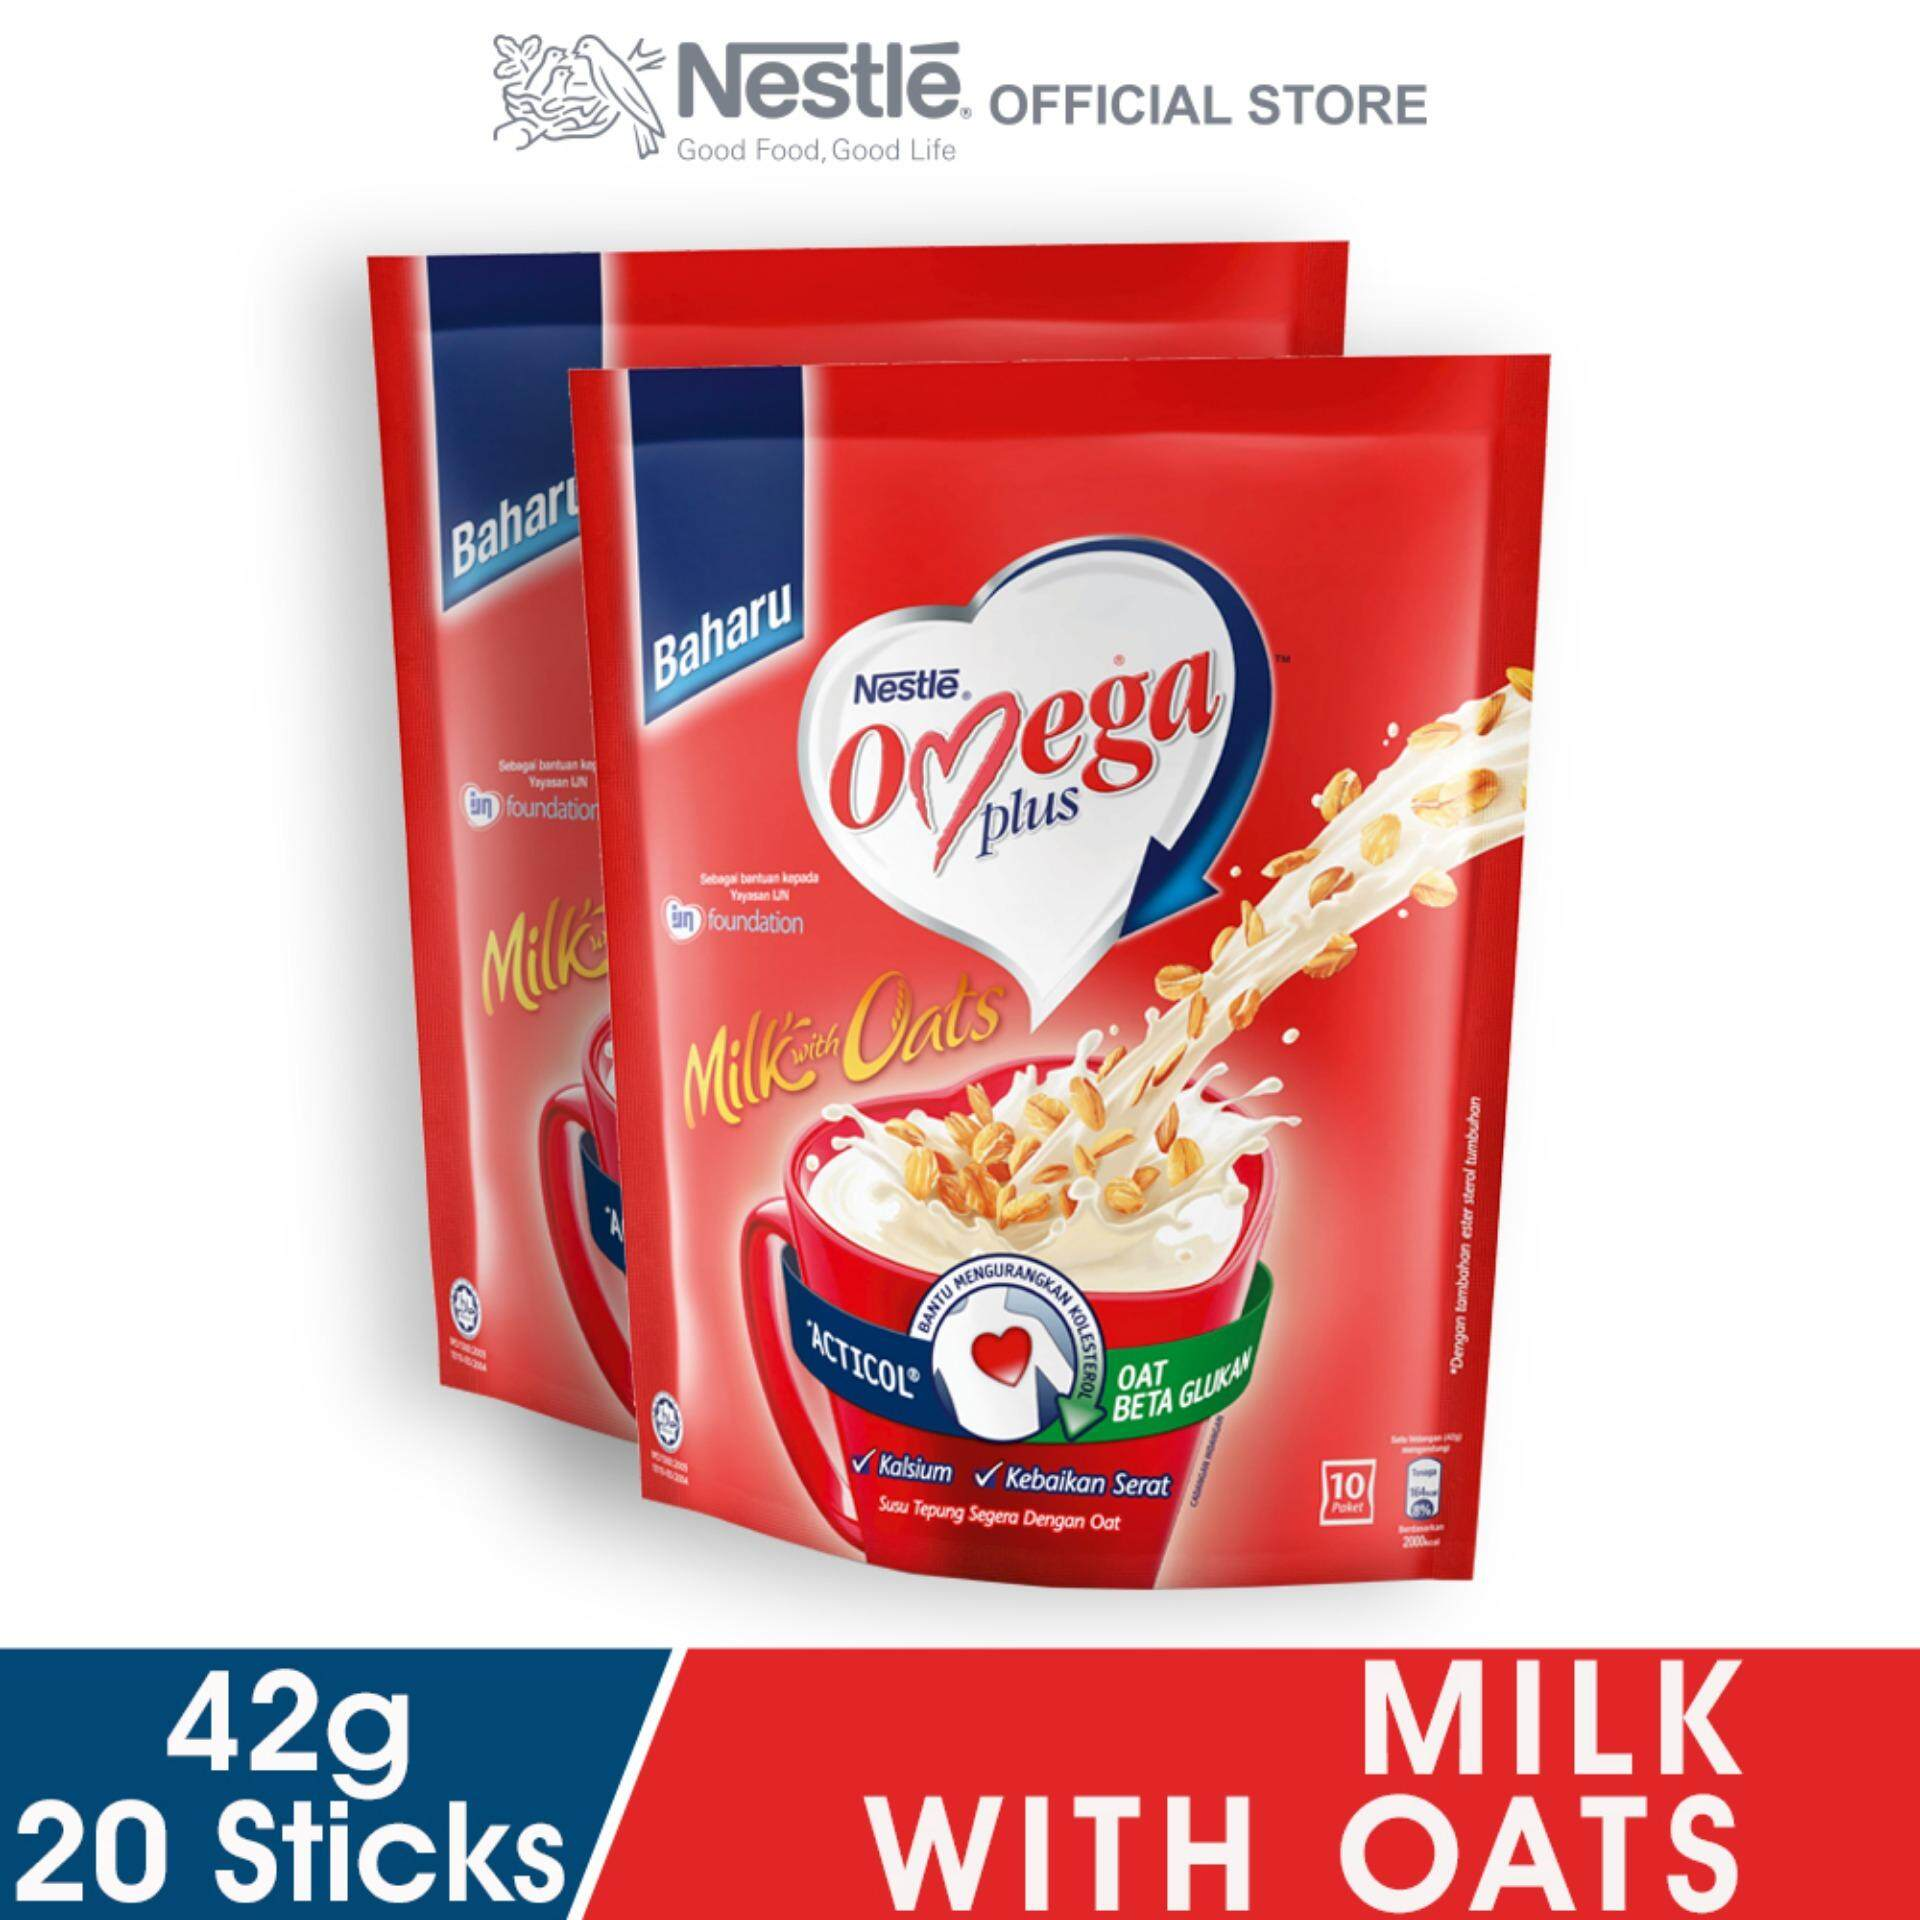 Nestle Omega Plus With Oats 10 Sticks 42g X2 Packs By Nestle Flagship Store.